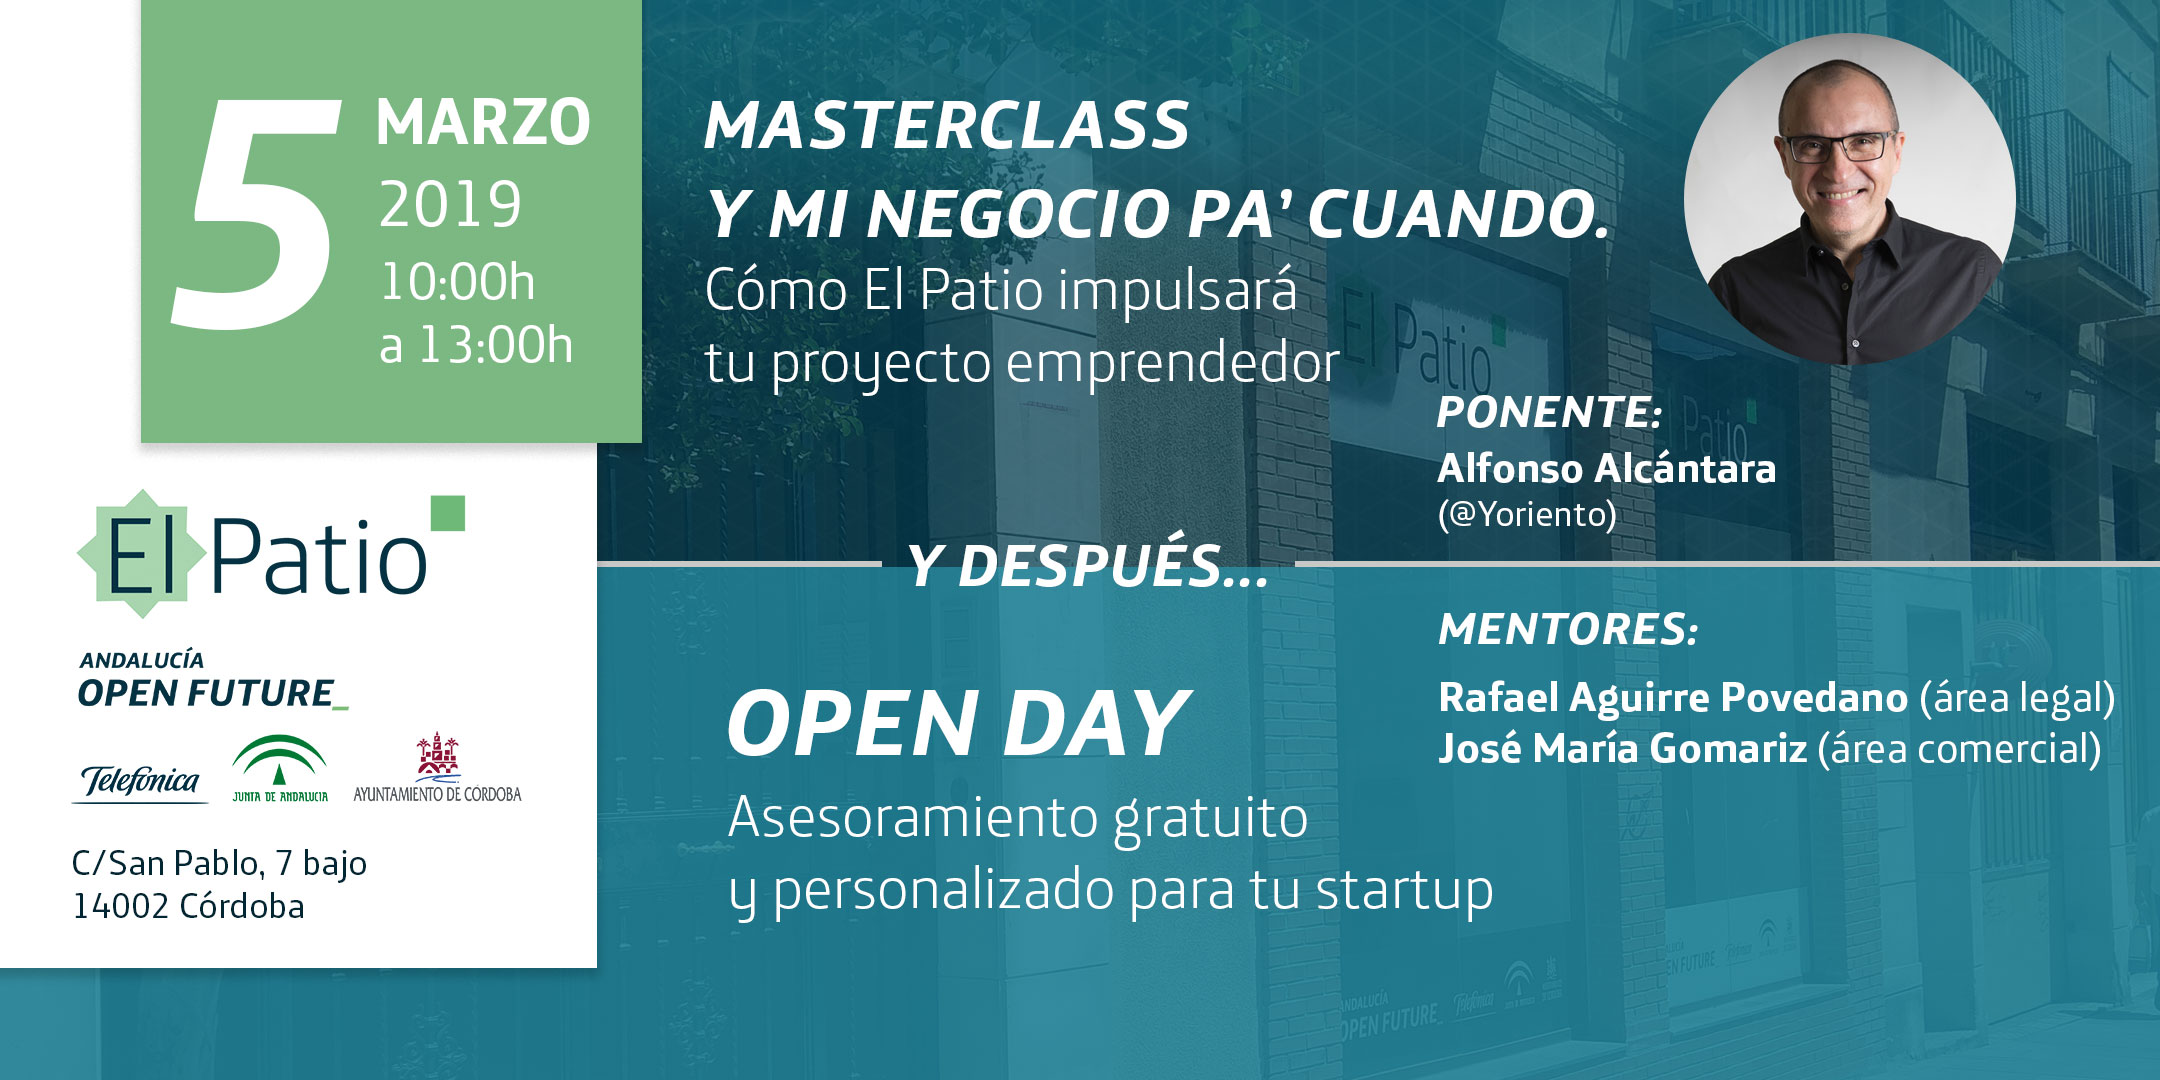 masterclass-open-day-patio-yoriento